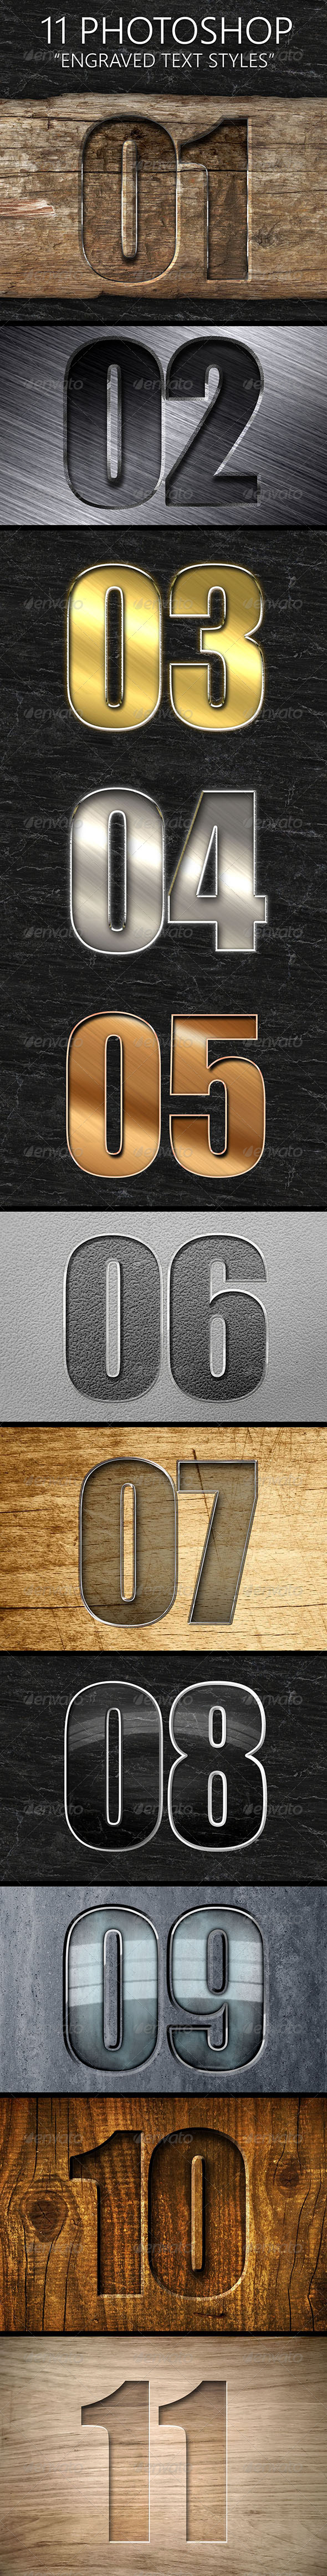 GraphicRiver 11 Engraved Text Styles 7864273